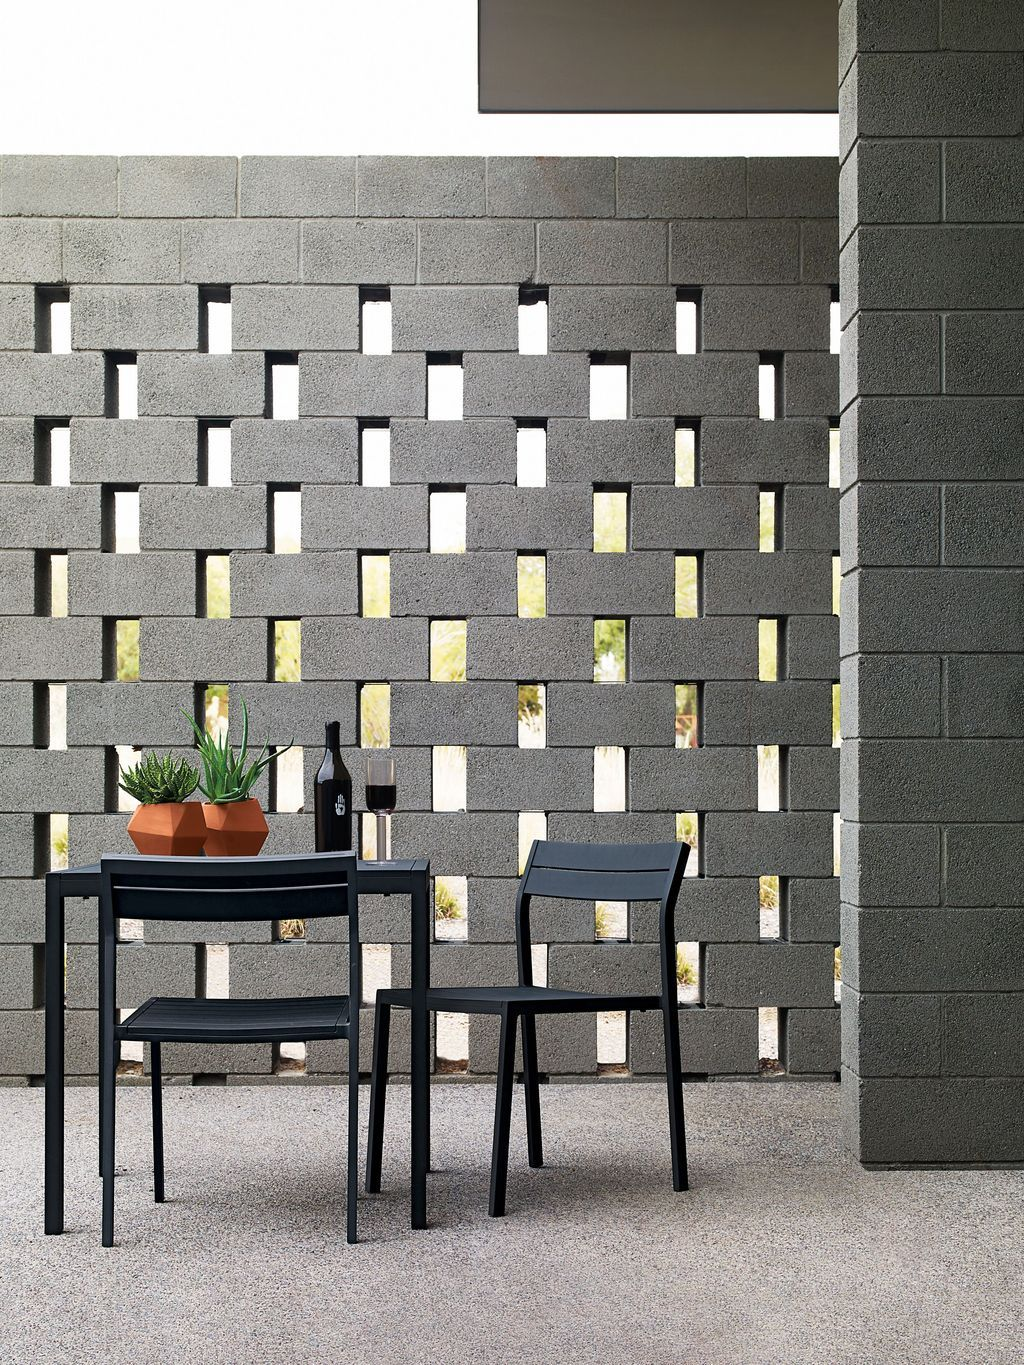 50 Breeze Block Wall Ideas Internal Walls Ought To Be Orientated To Permit For Cross Ventilation Breeze Block Wall Cinder Block Walls Brick Exterior House